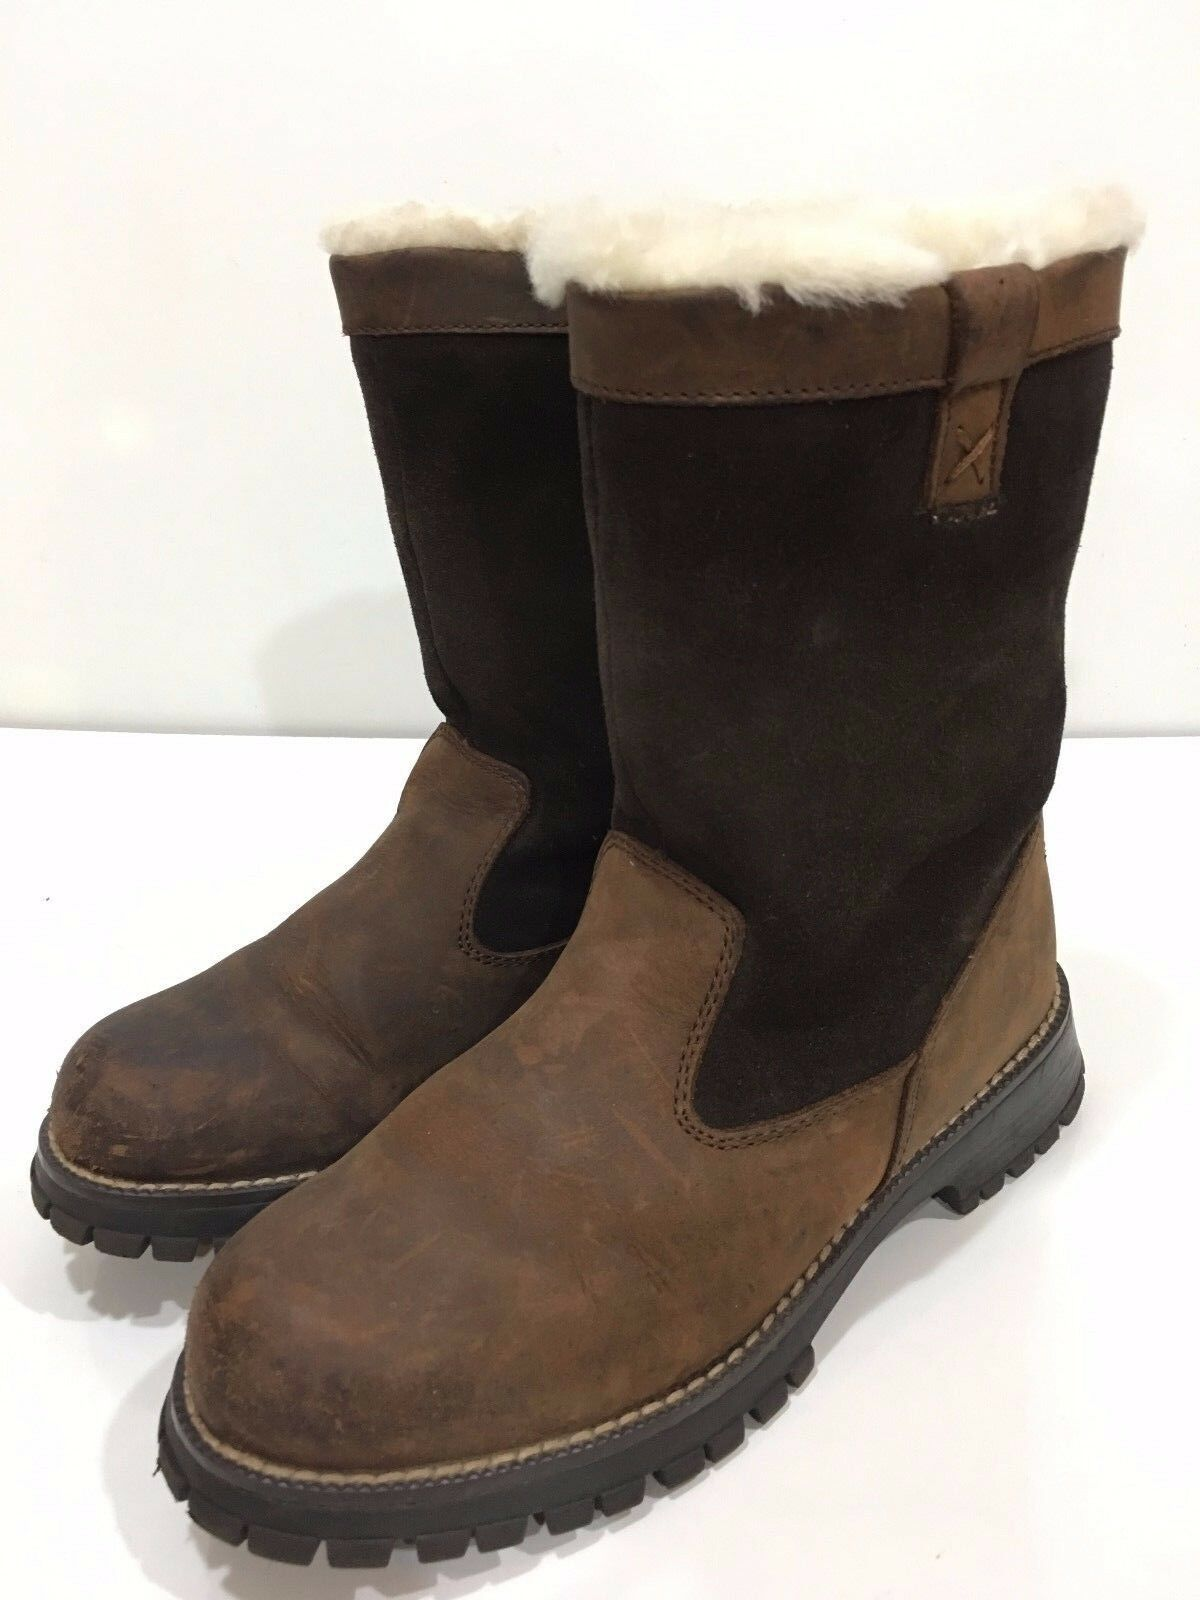 Bass Arctic Women's Distressed Leather Fur Lined Pull-on Boots Size 5 M